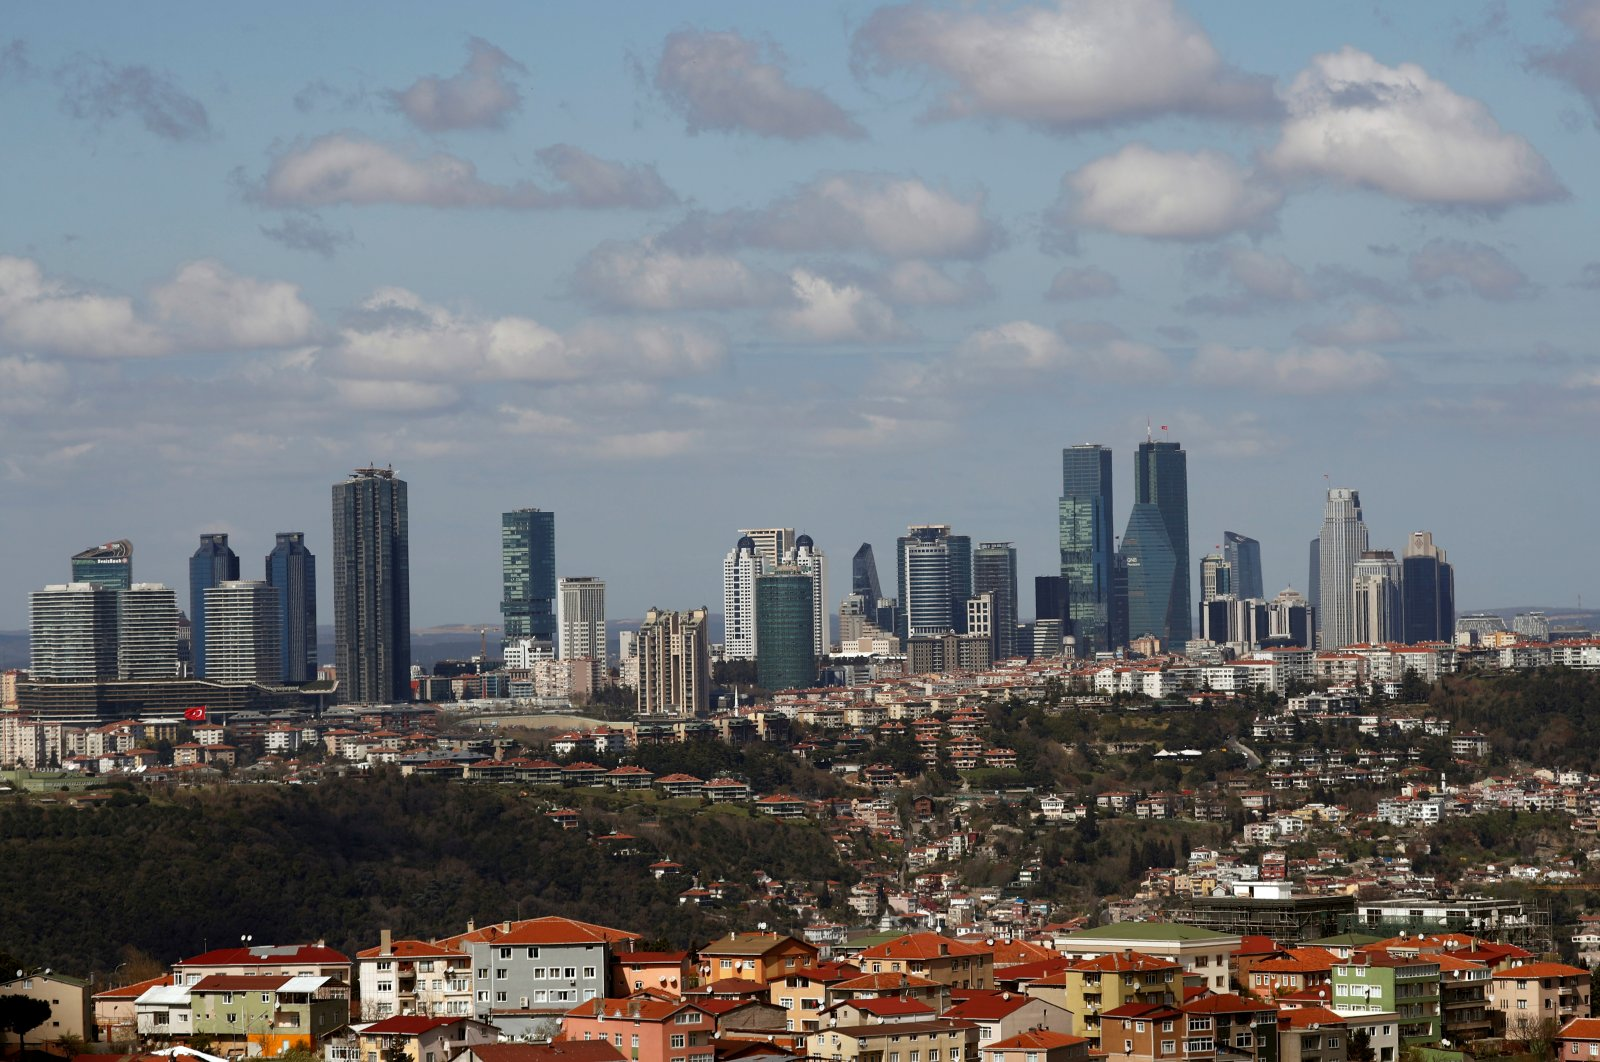 Skyscrapers are seen in the business and financial district of Levent, which comprises of leading banks' and companies' headquarters, in Istanbul, Turkey, March 29, 2019. (Reuters Photo)